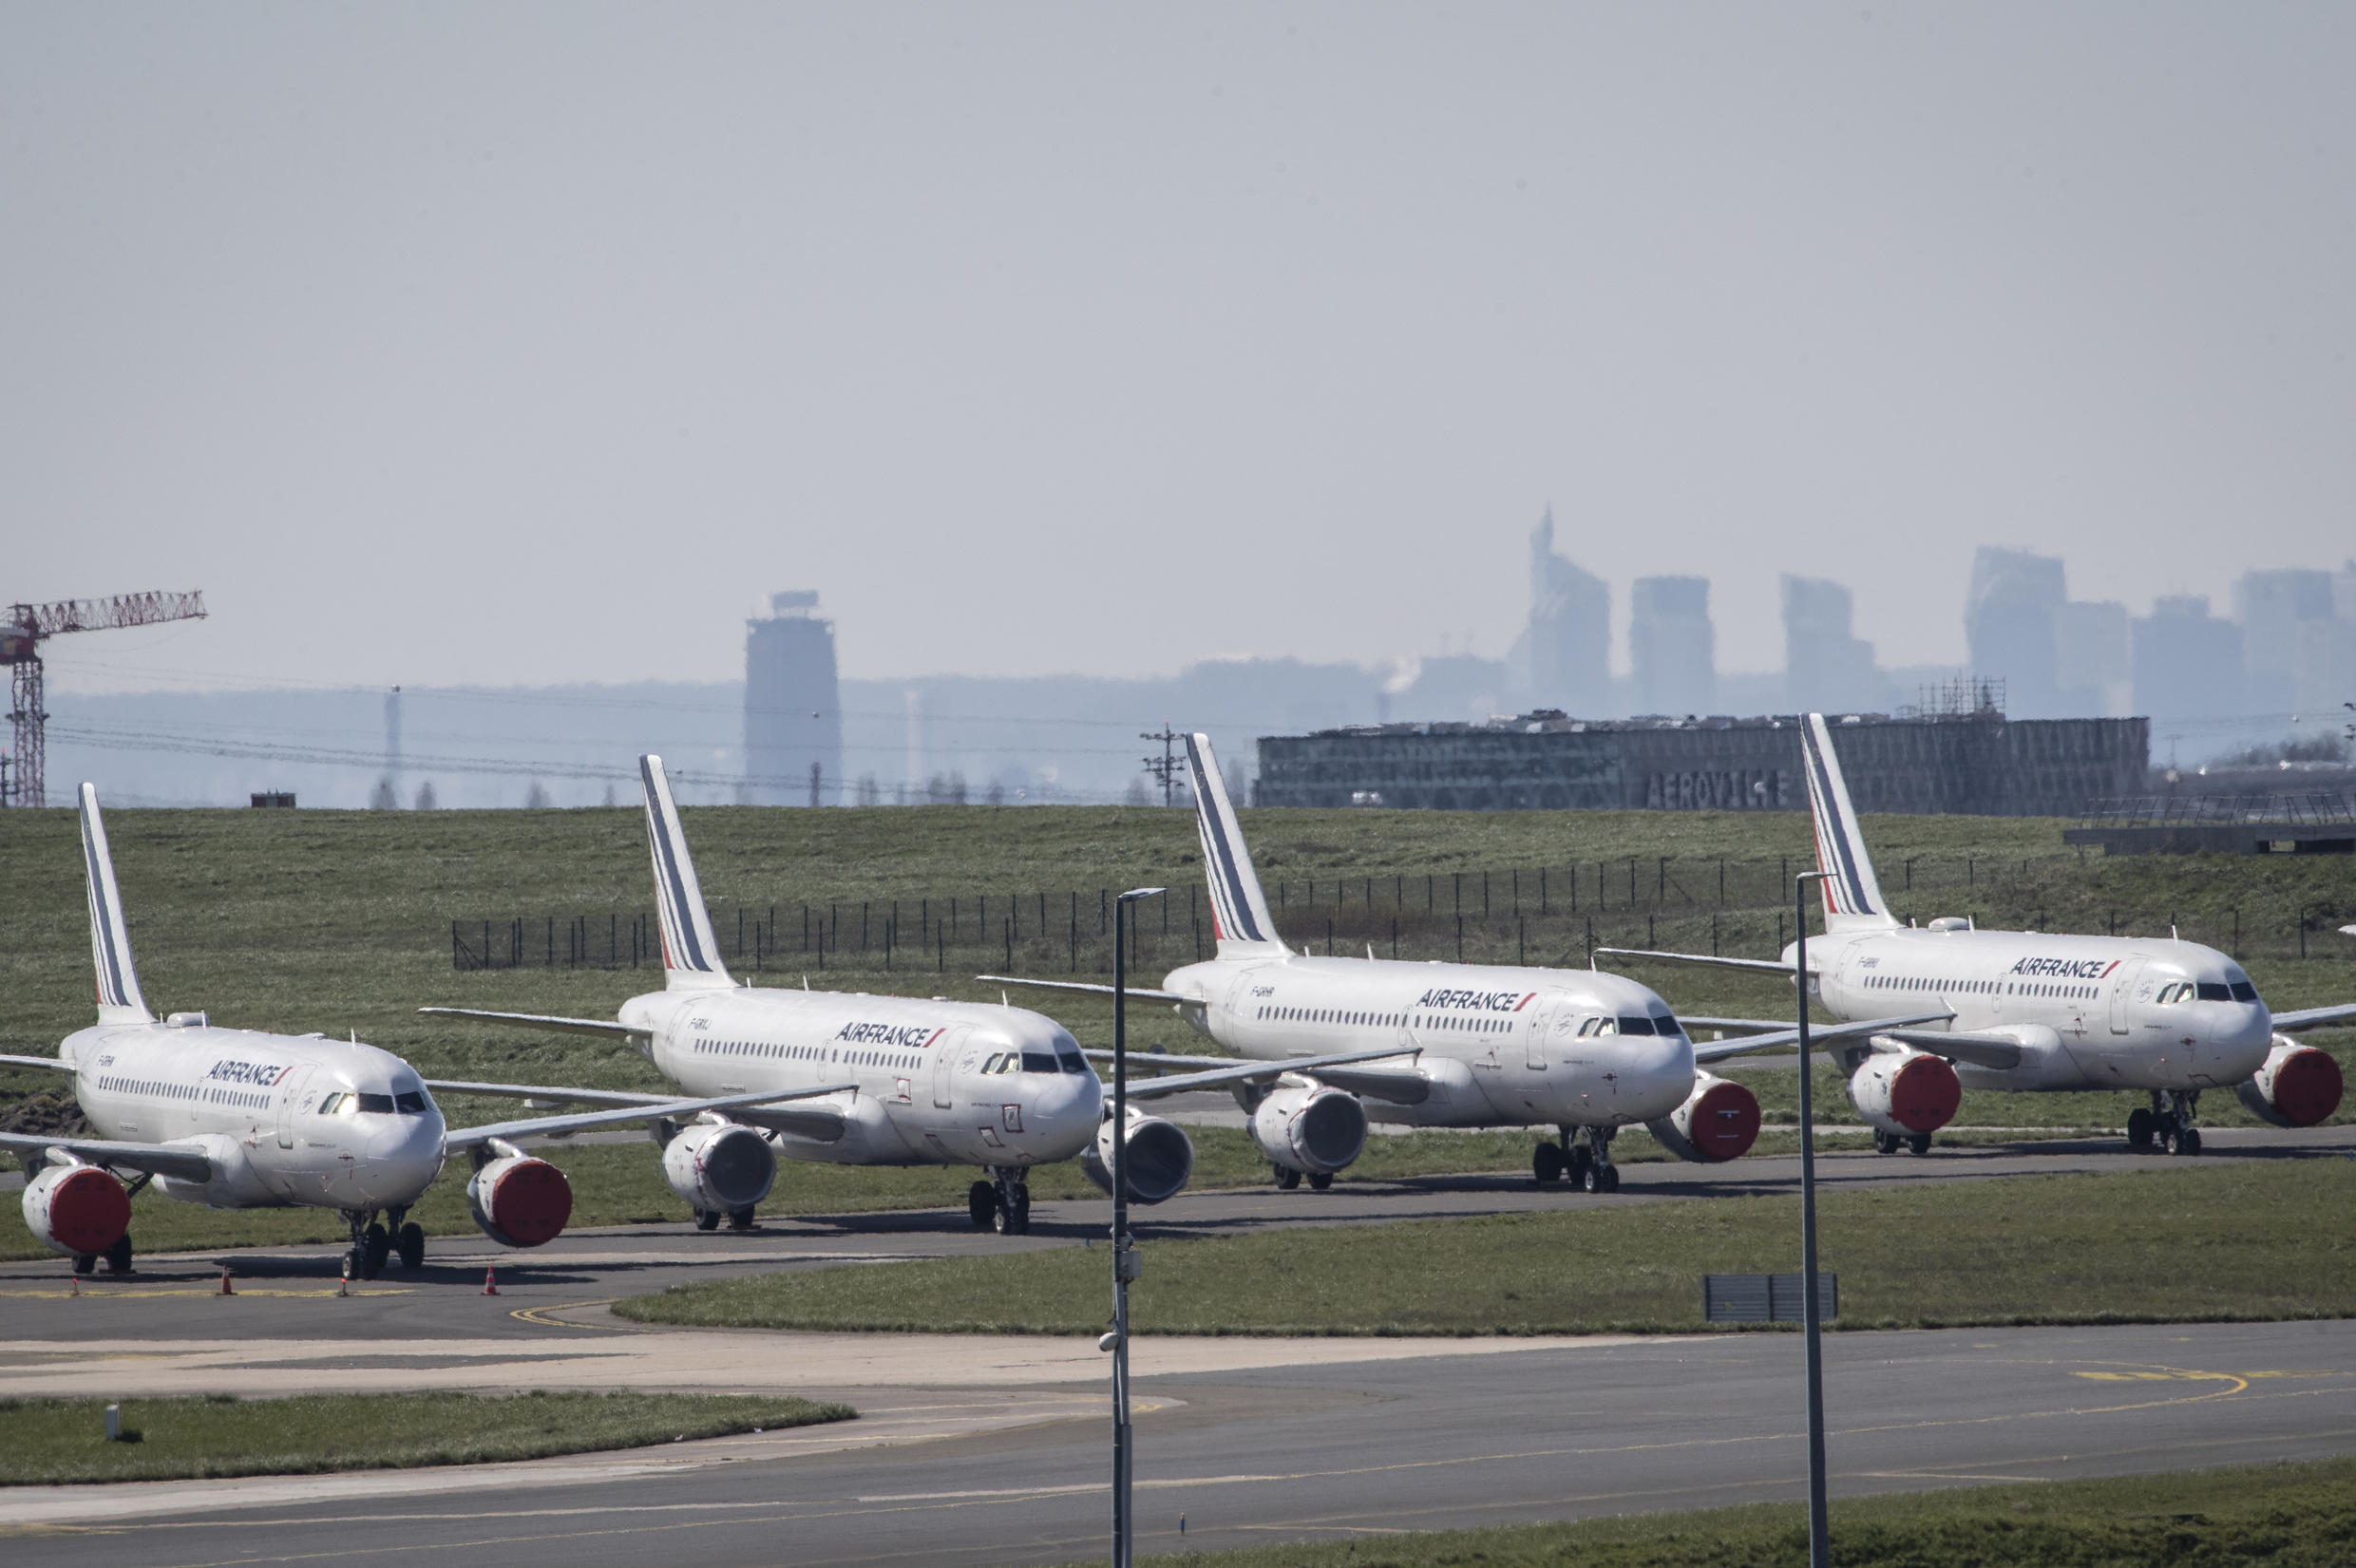 Grounded Air France airplanes (pictured March 2020) sit at the Roissy-Charles de Gaulle airport in Roissy-en-France, north of Paris, after the coronavirus pandemic forced the grounding of planes around the world as borders and airports were closed